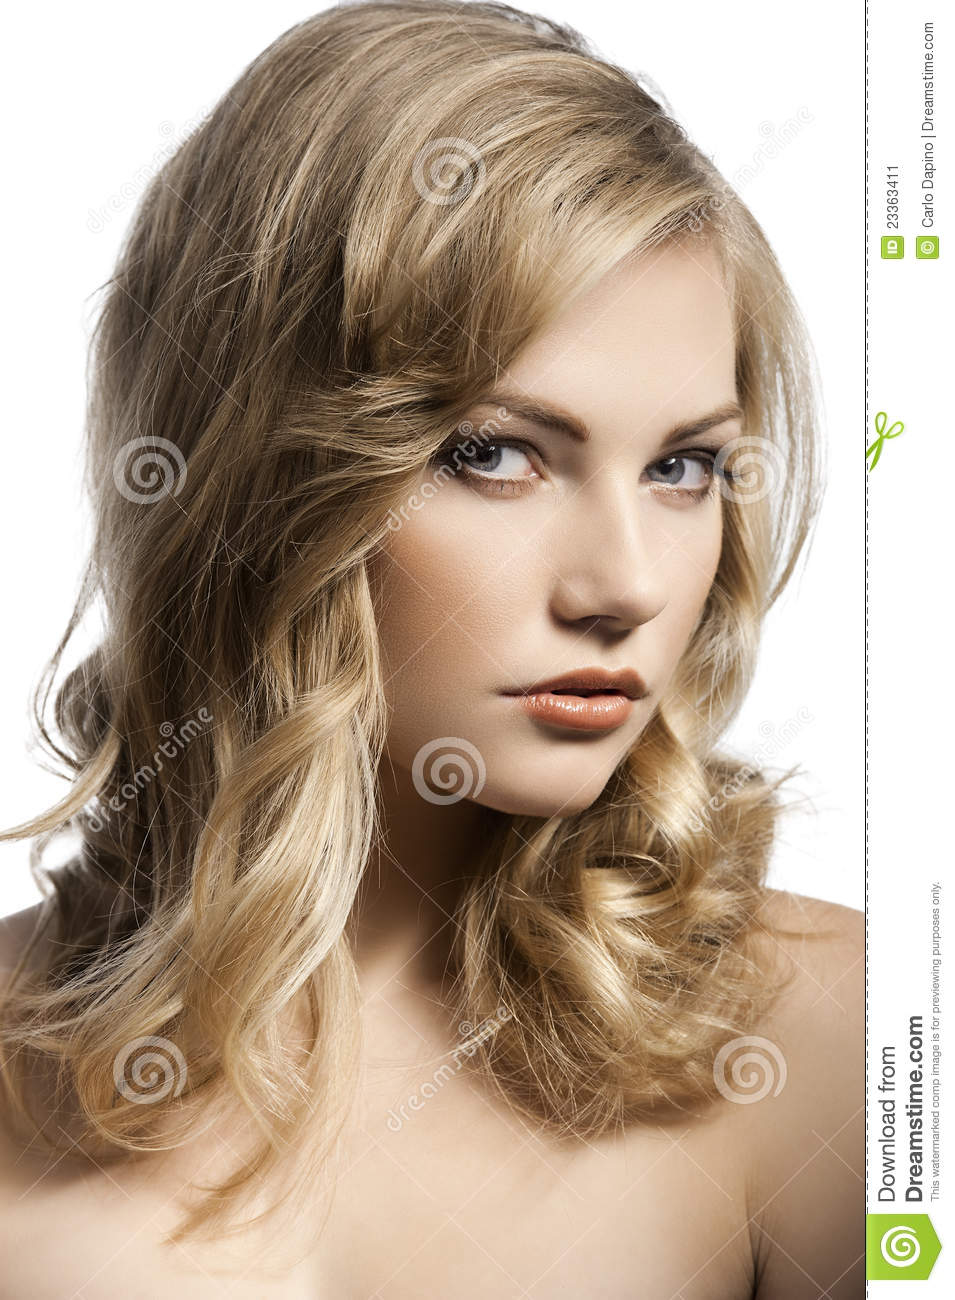 cute young girl with stylish hair stock image image 23363411. Black Bedroom Furniture Sets. Home Design Ideas